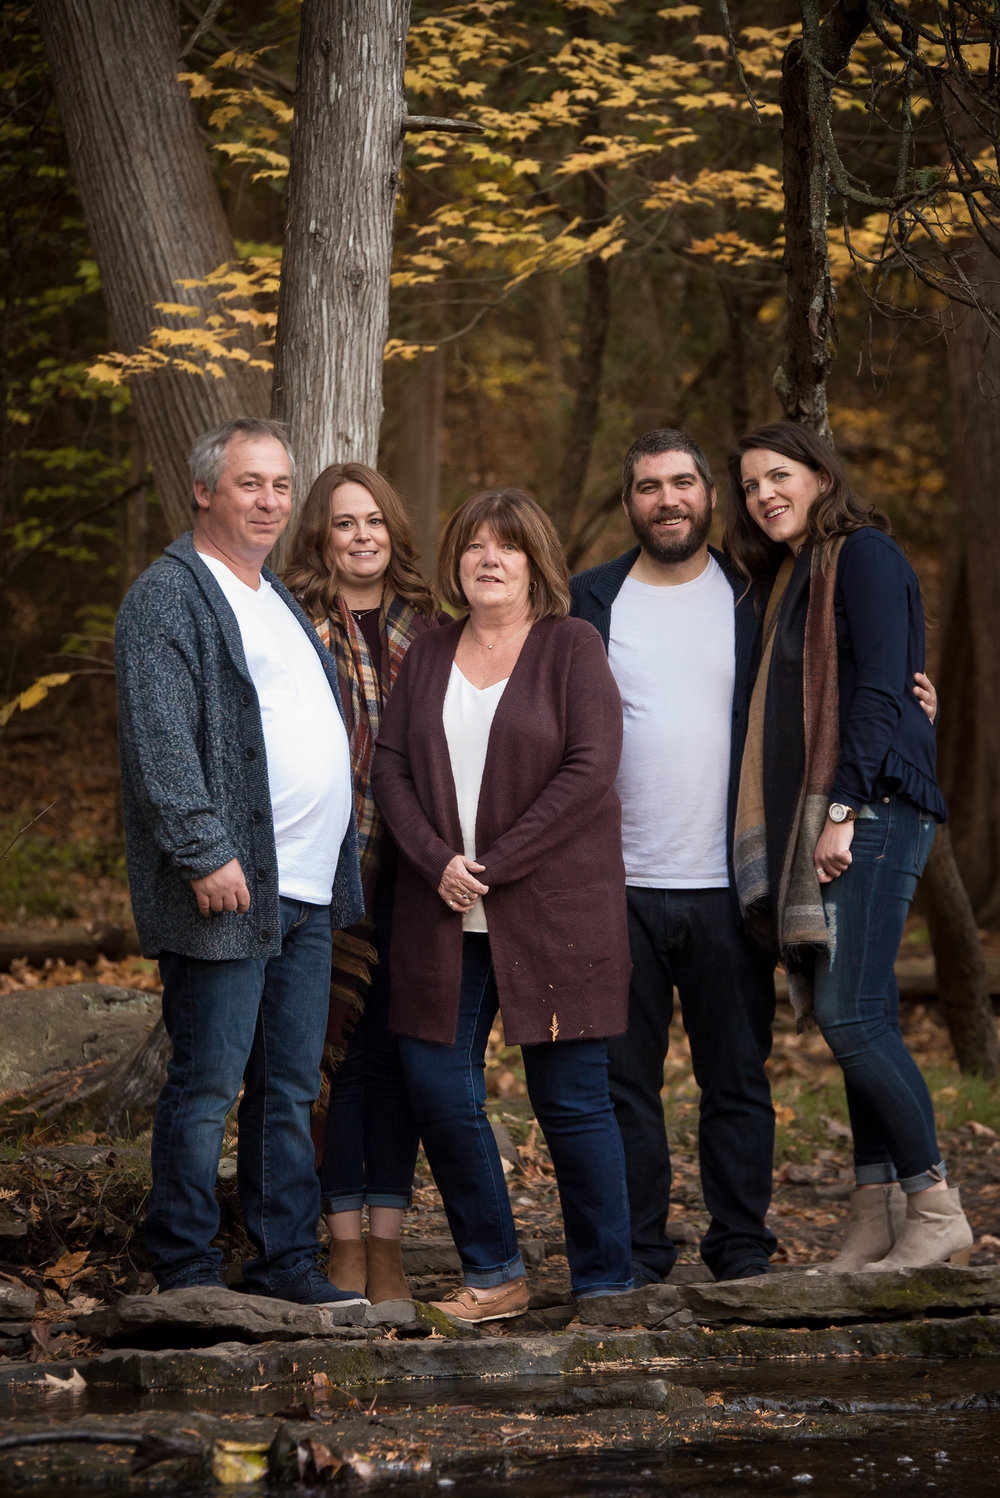 Naomi Lucienne Photography - Family - 171020828.jpg